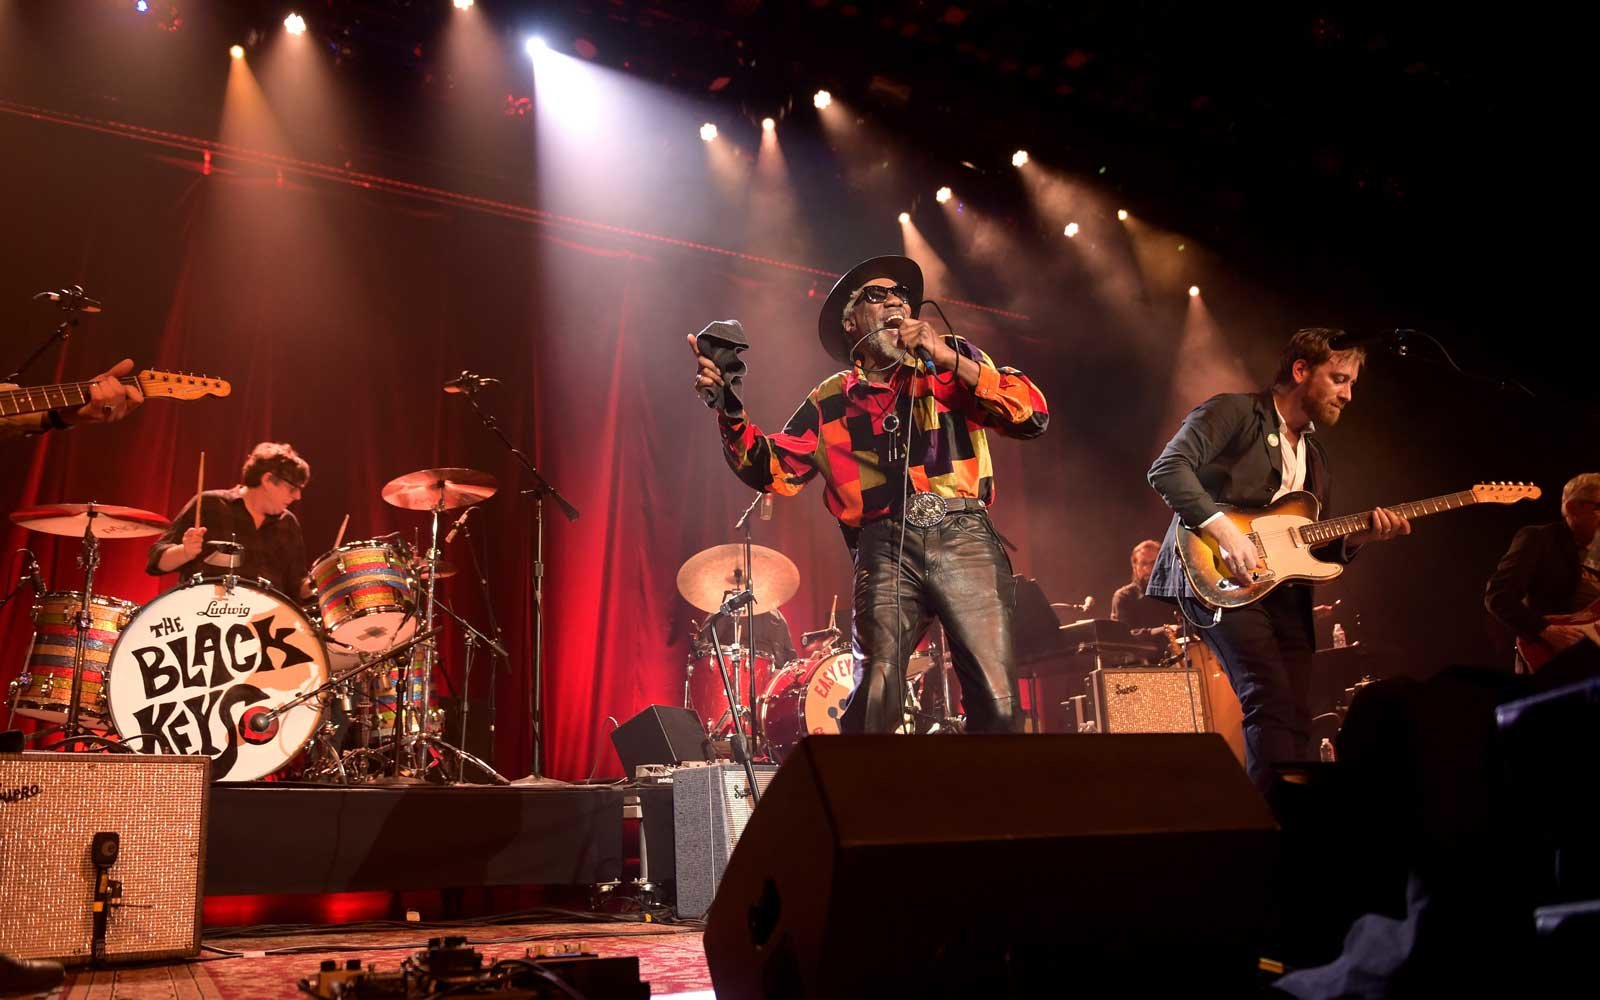 Drummer Patrick Carney, Singer Robert Finley and musician Dan Auerbach perform at Ryman Auditorium on February 25, 2018 in Nashville, Tennessee.